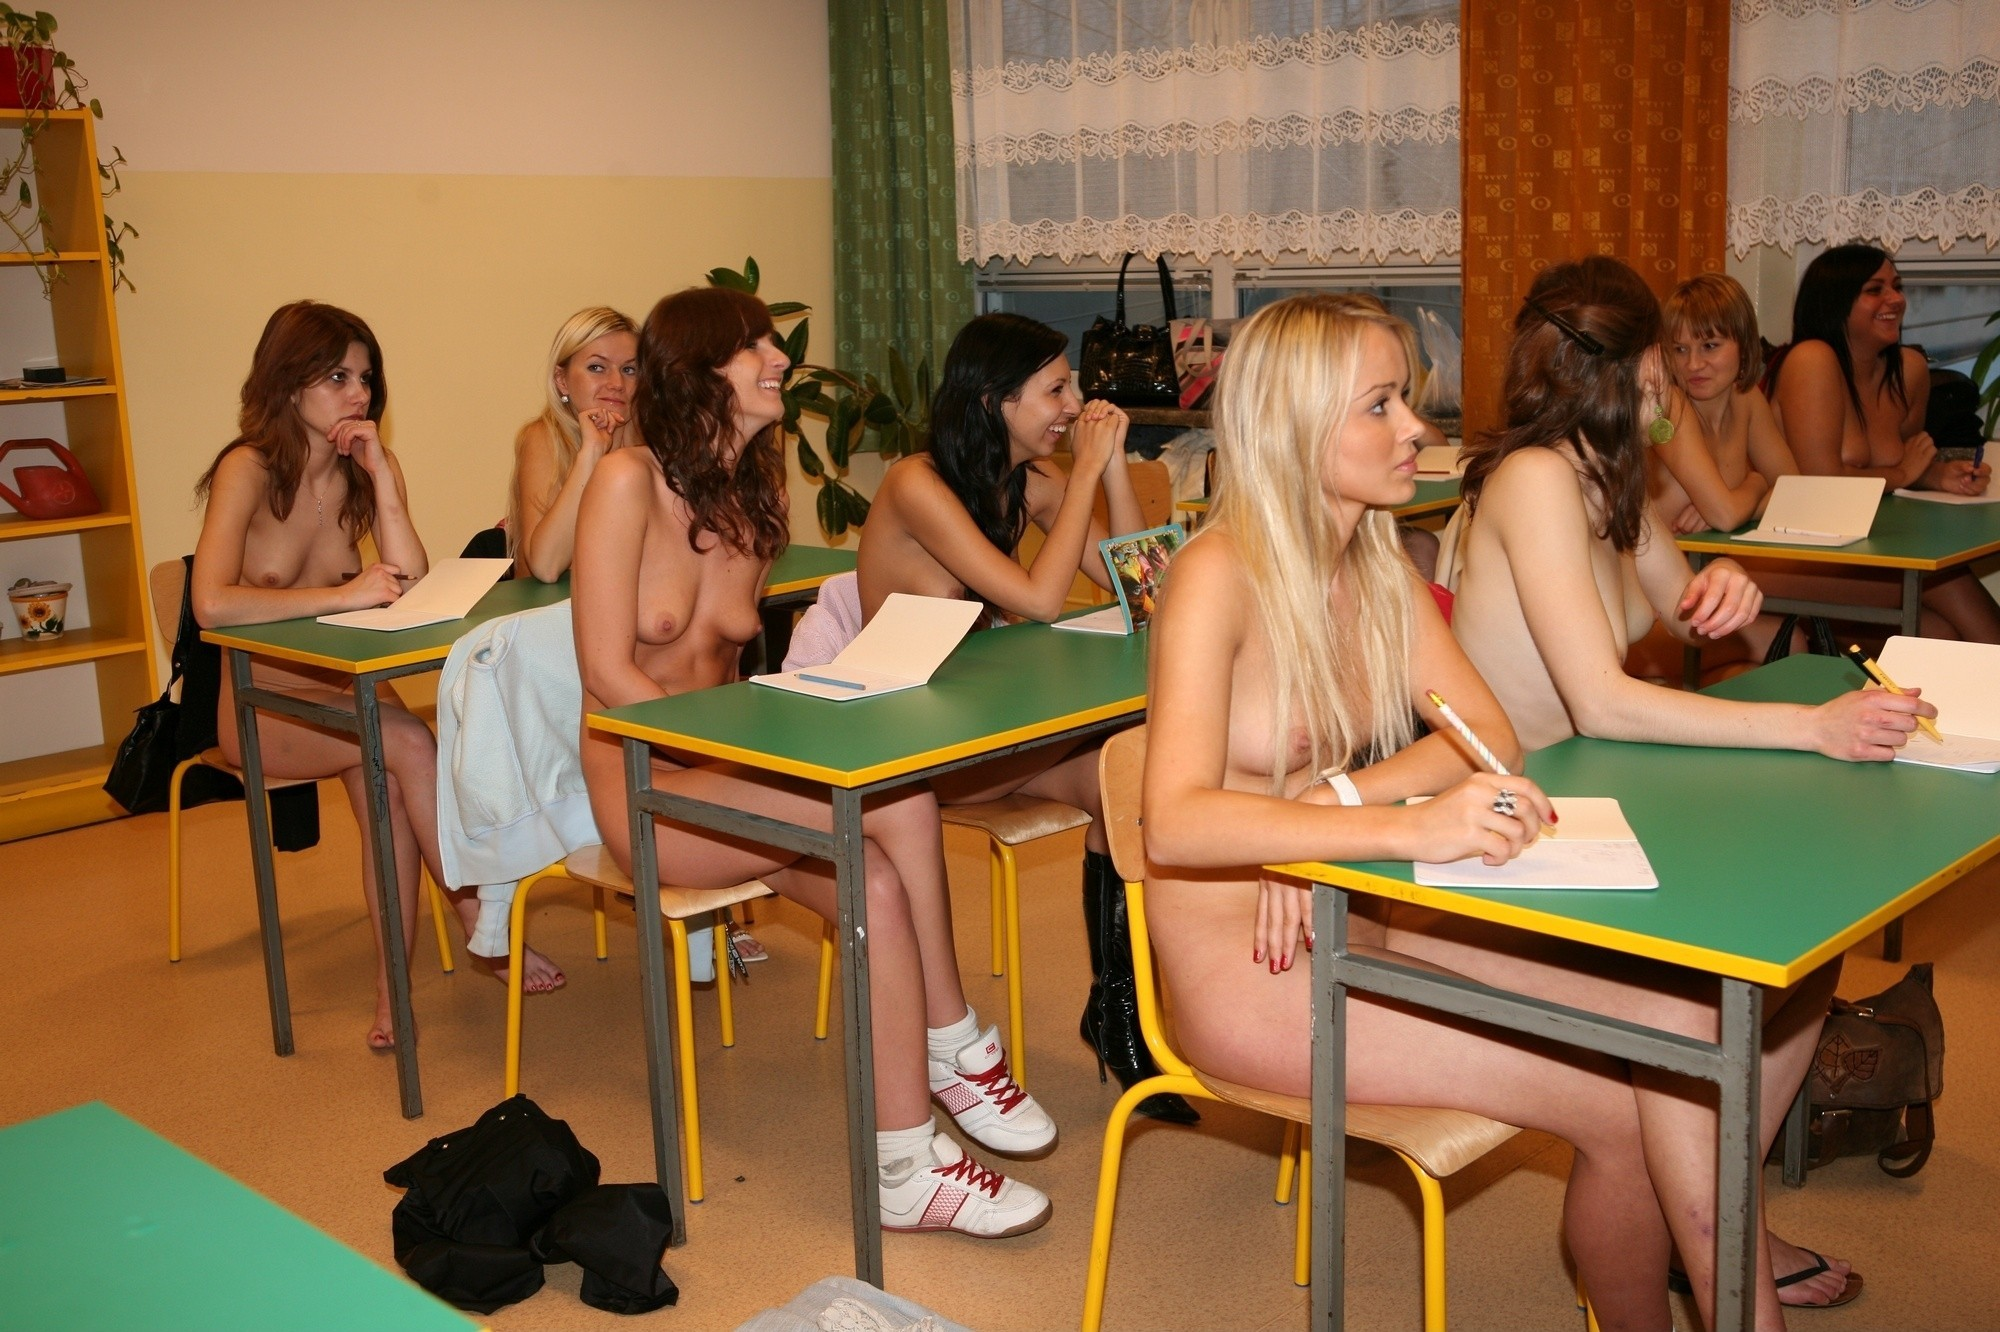 girls-pussy-teenagers-naked-in-school-patricks